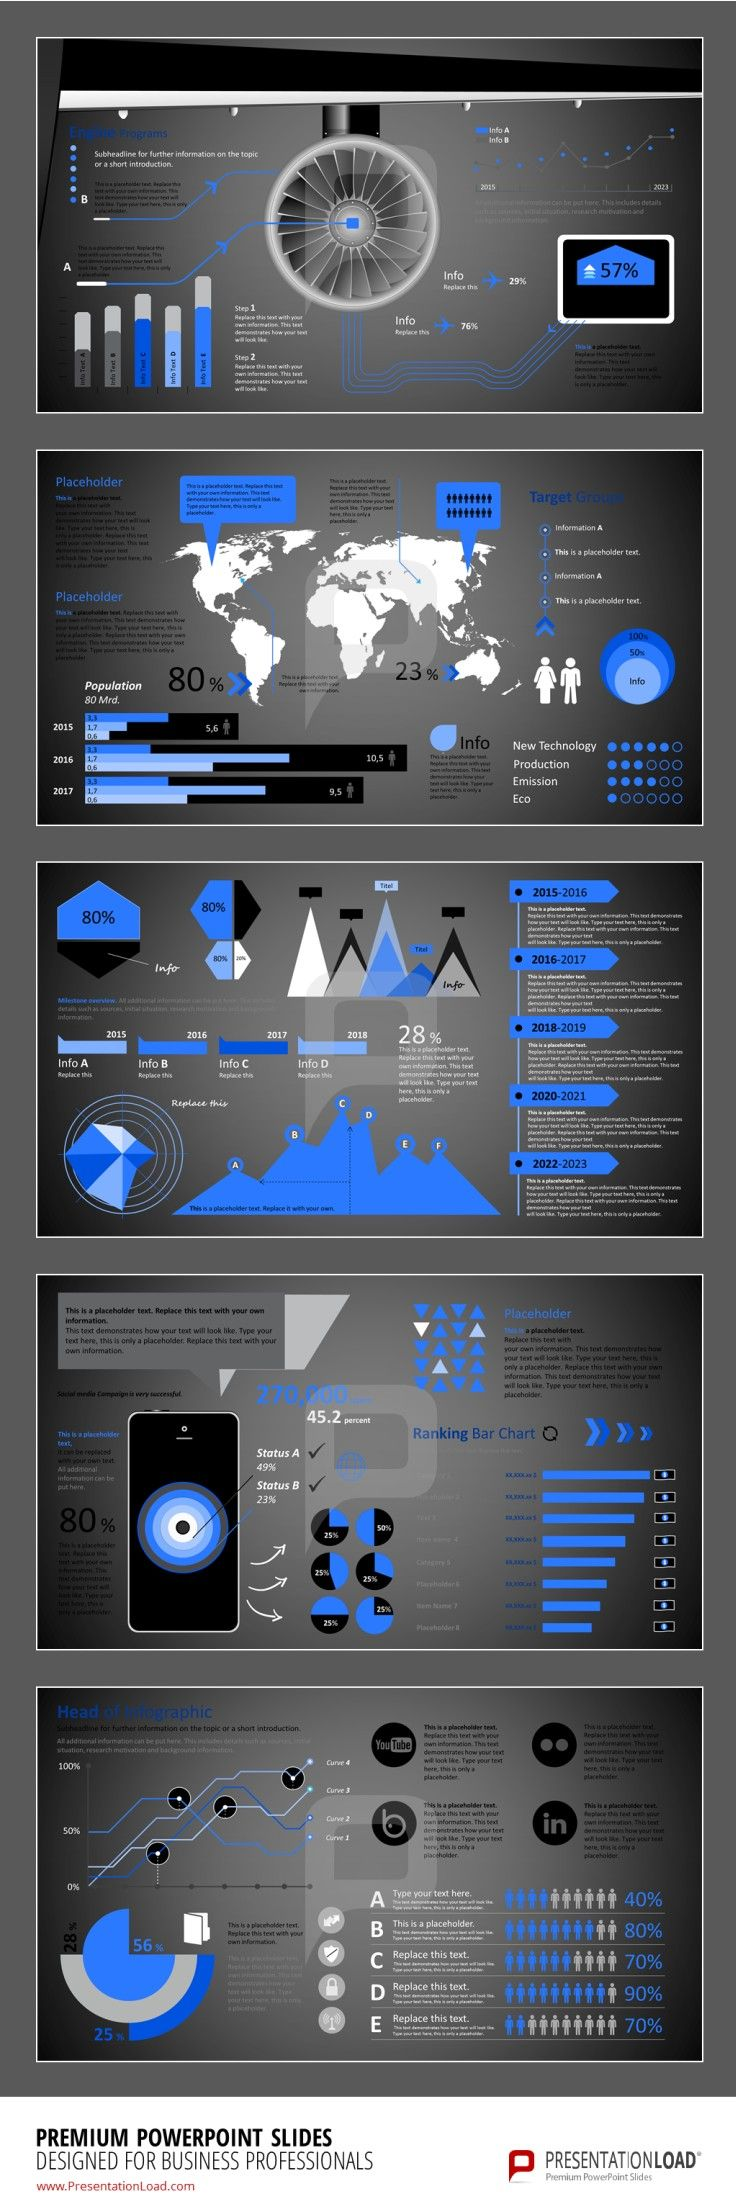 10 images about infographics powerpoint templates on pinterest graphics creativity and charts. Black Bedroom Furniture Sets. Home Design Ideas